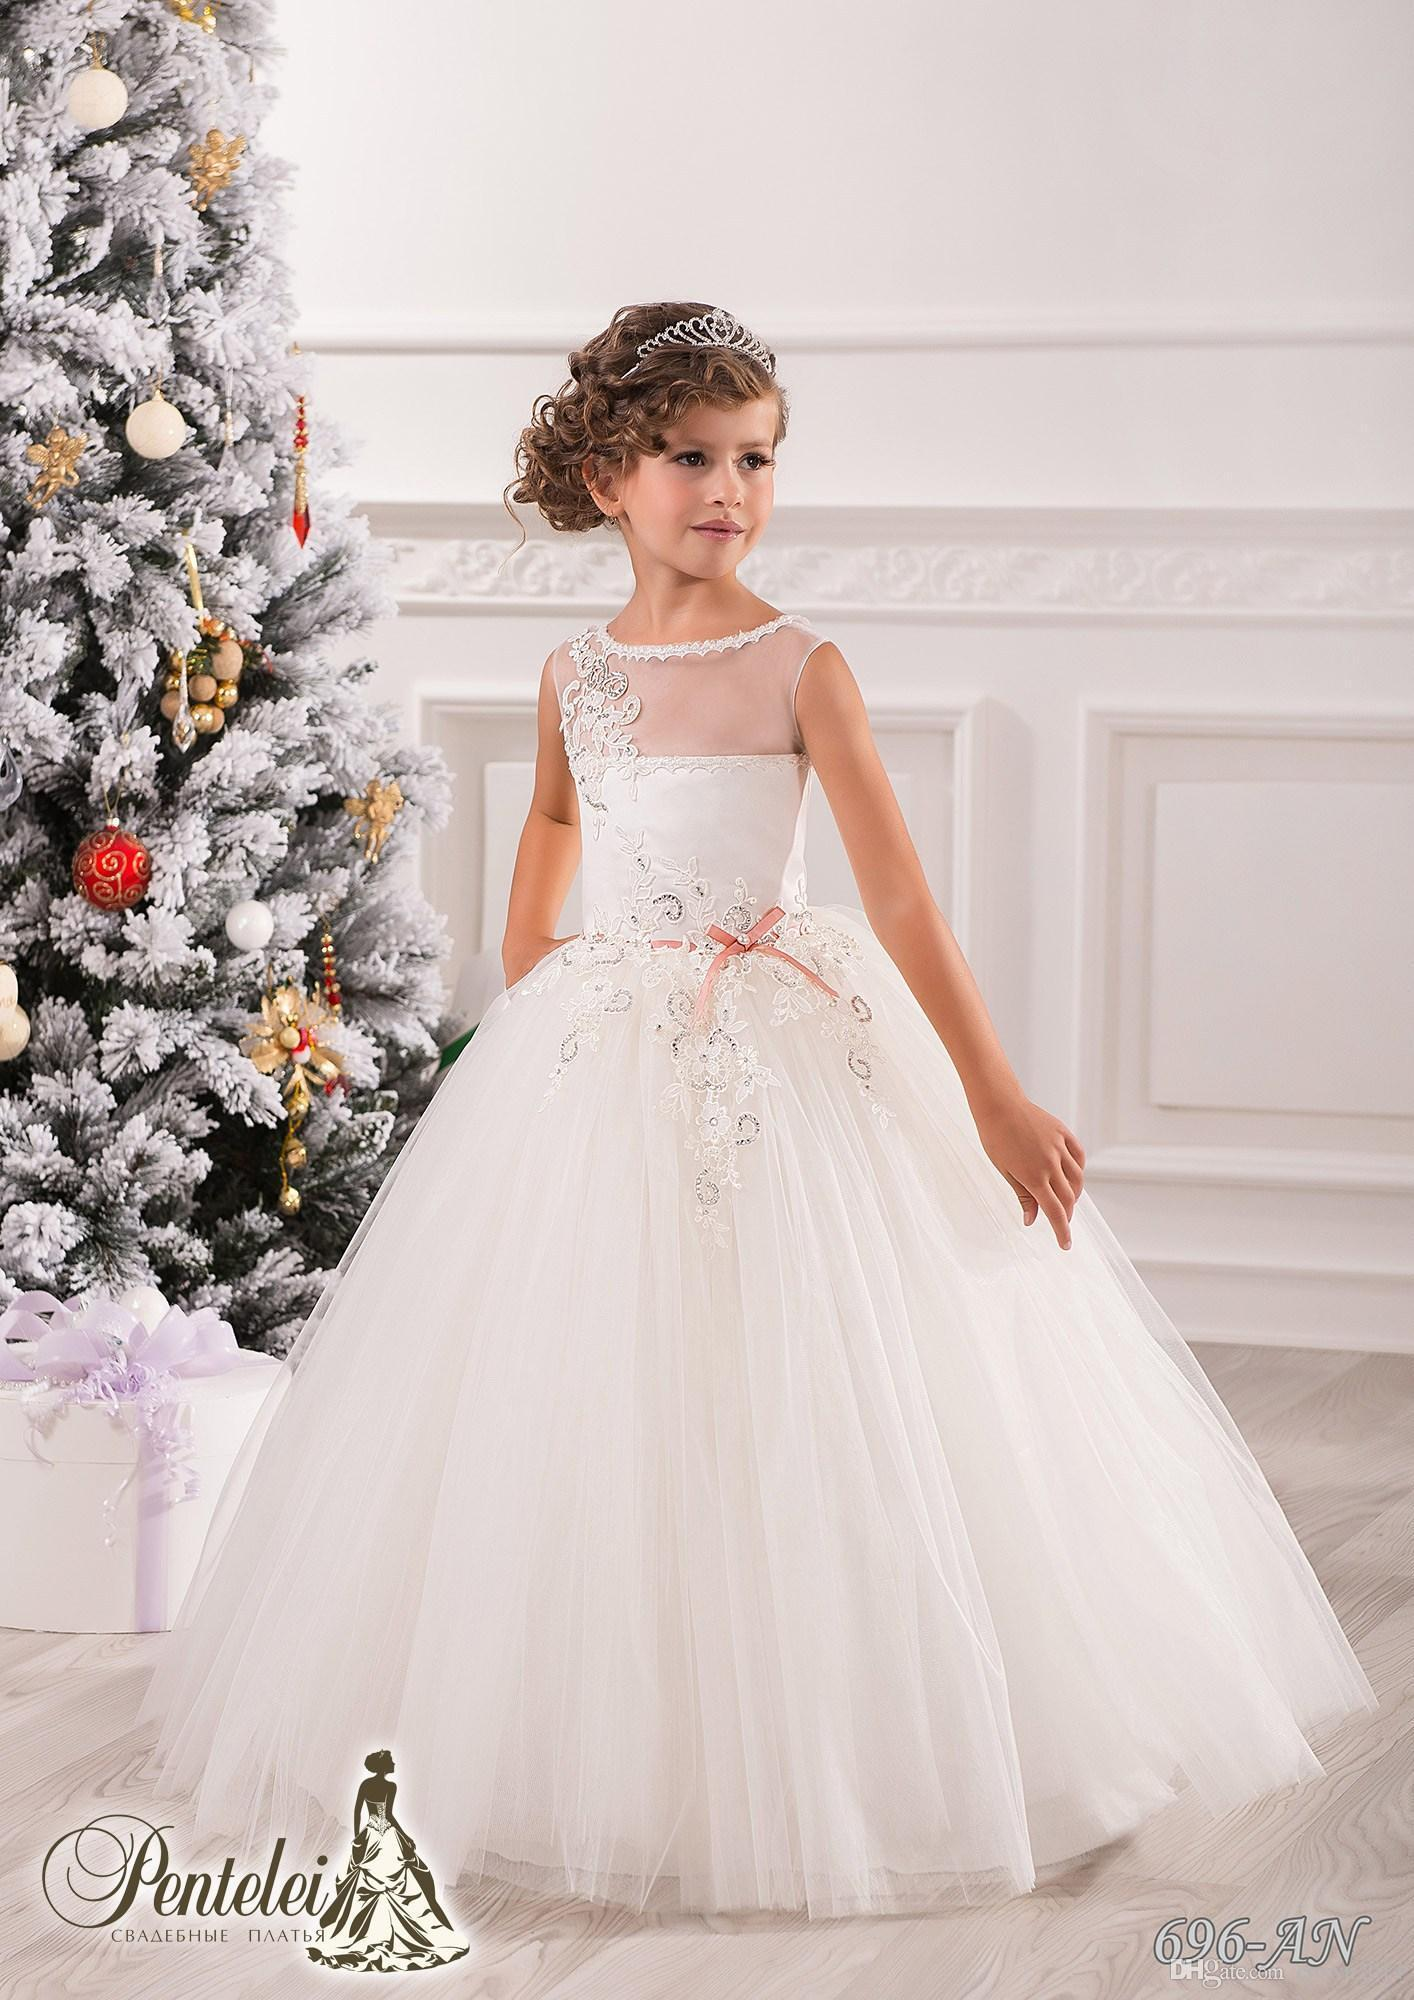 fc8a4db52 Beautiful Vintage Ball Gown Flower Girl Dresses For Weddings Jewel Applique  Sash Net Baby Girl Birthday Party Christmas Princess Dresses Flower Girl  Dresses ...